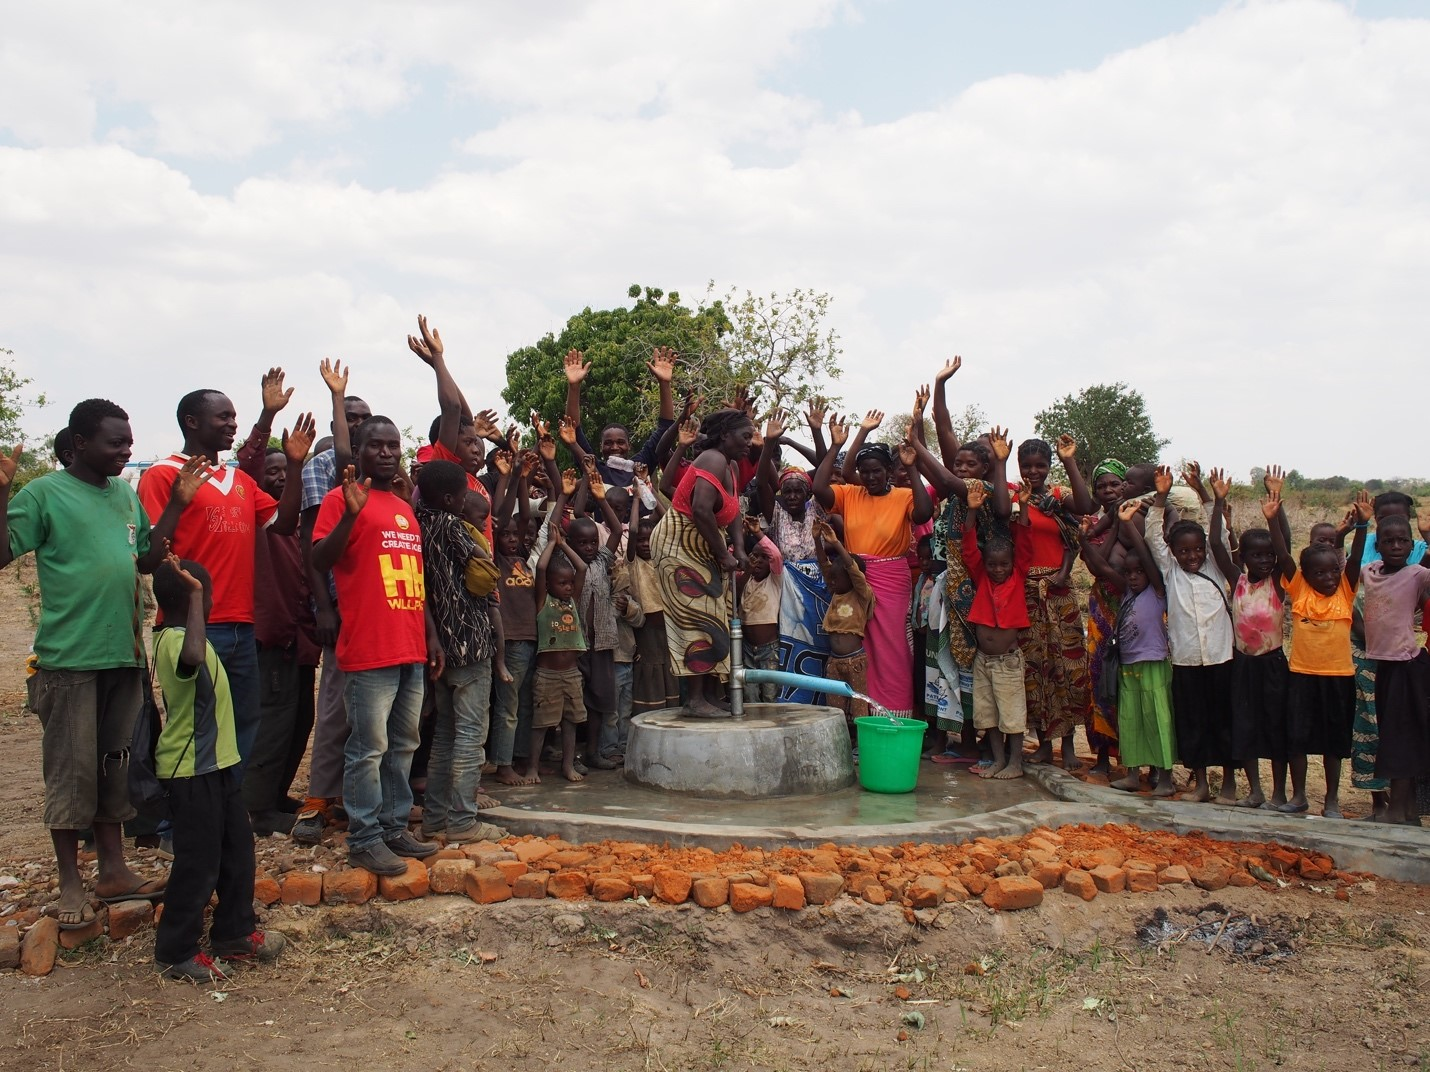 A community celebrates the gift of a clean, safe water supply that a shallow well provides.